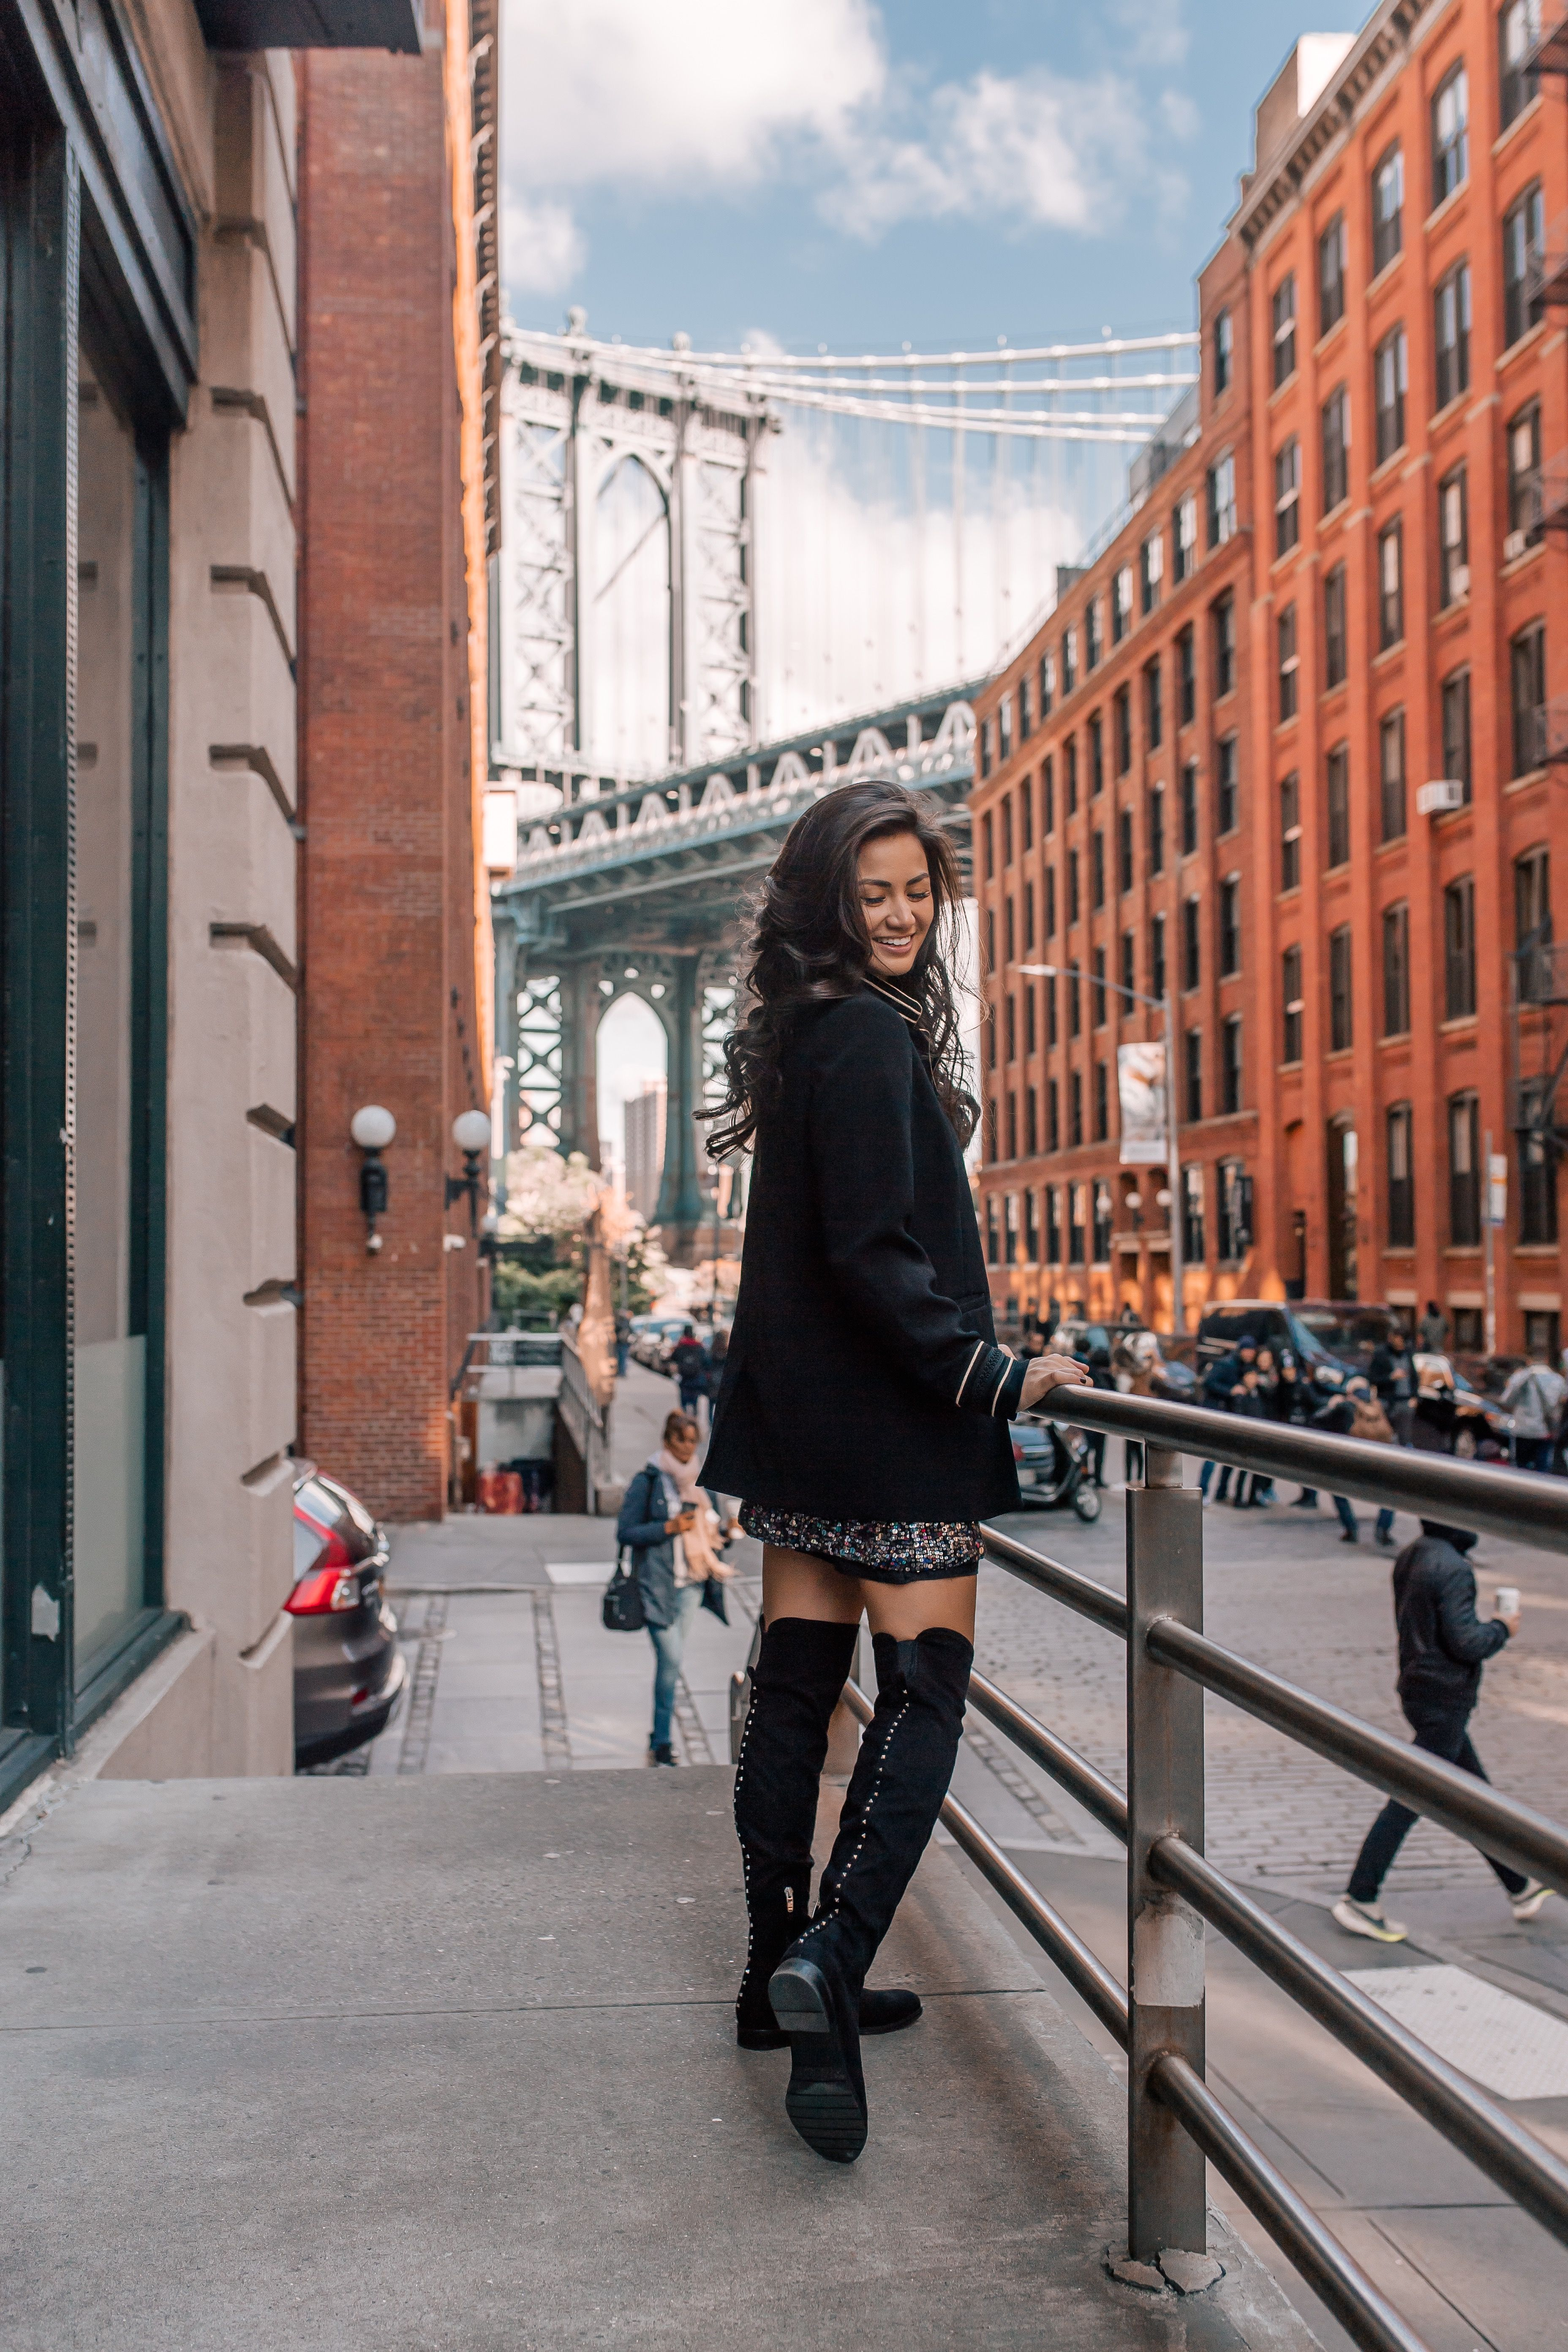 a64306b309 DSW shoes Winter | Winter outfit ideas | NYC street style | nyc fashion  bloggers | Brooklyn | Manhattan Bridge photoshoot | black over the knee  boots ...